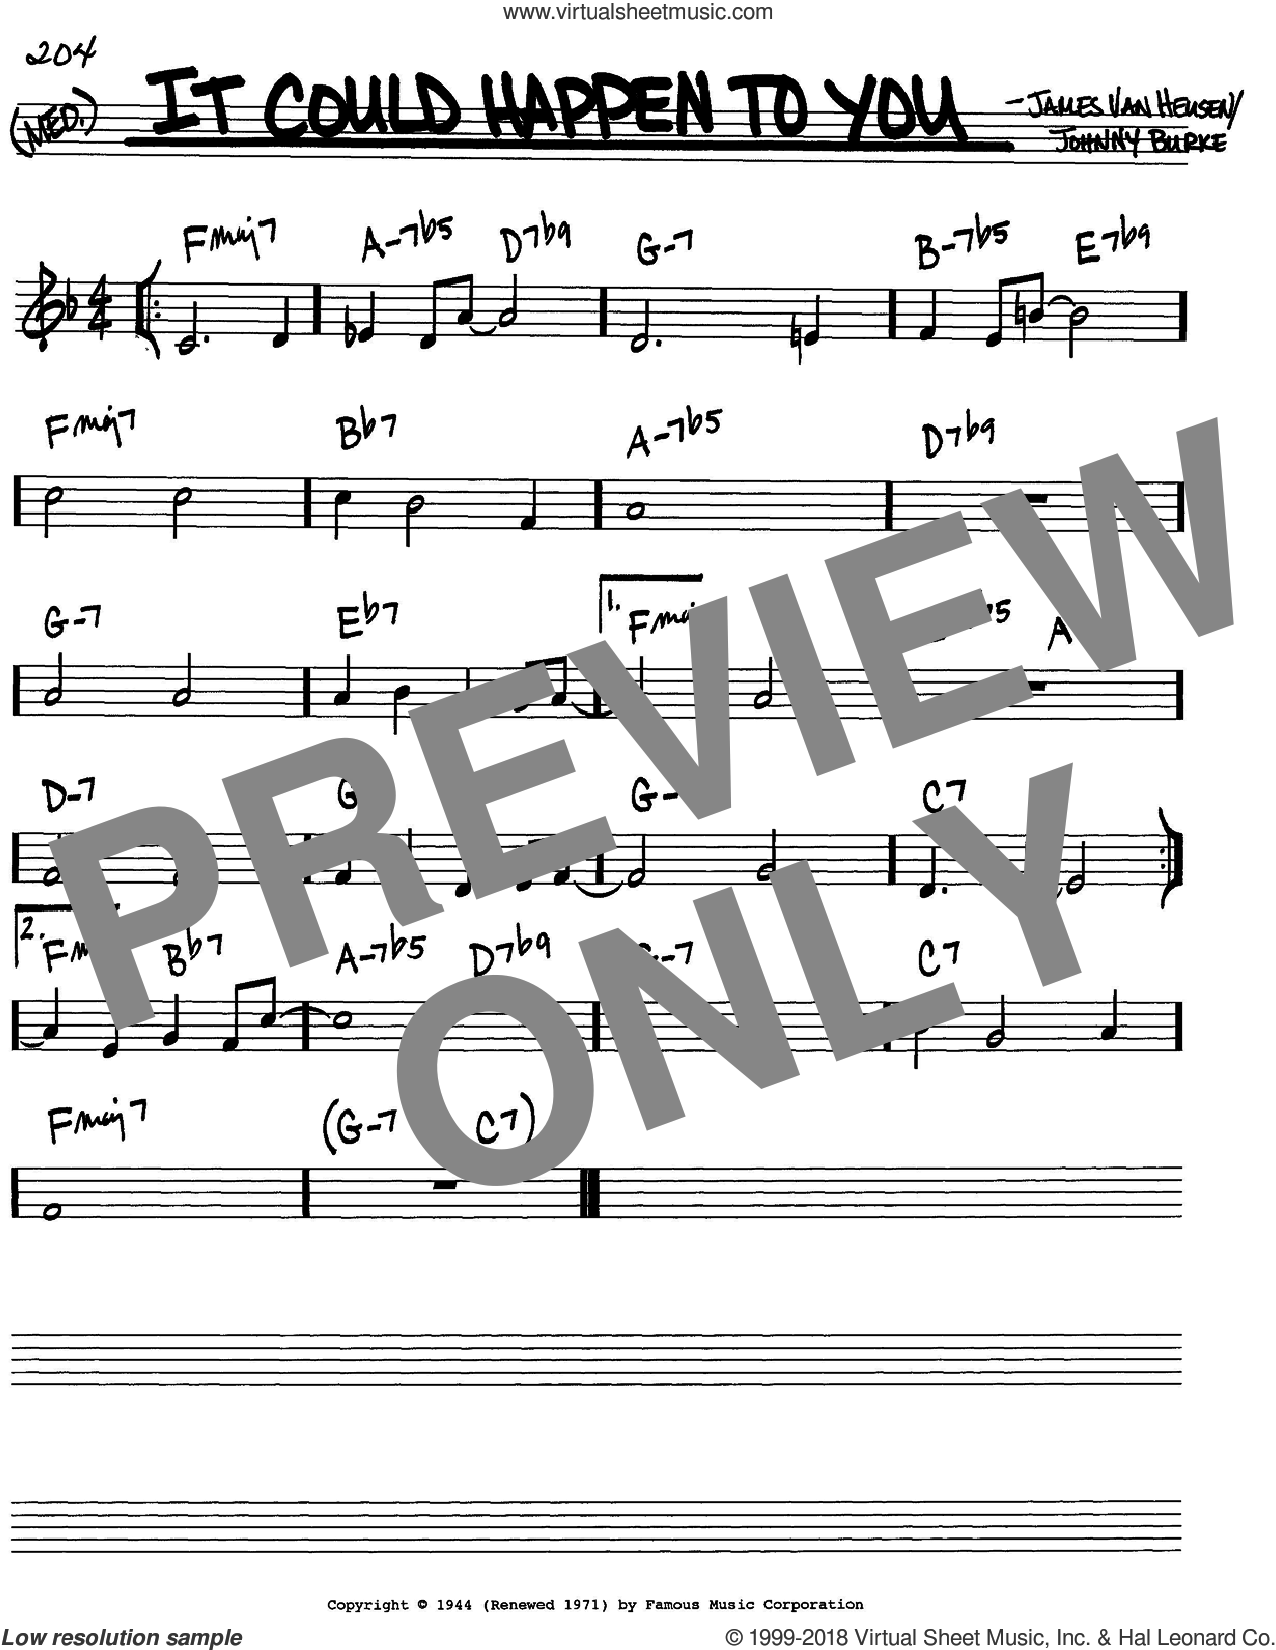 It Could Happen To You sheet music for voice and other instruments (in C) by Frank Sinatra, Jimmy van Heusen and John Burke, intermediate. Score Image Preview.